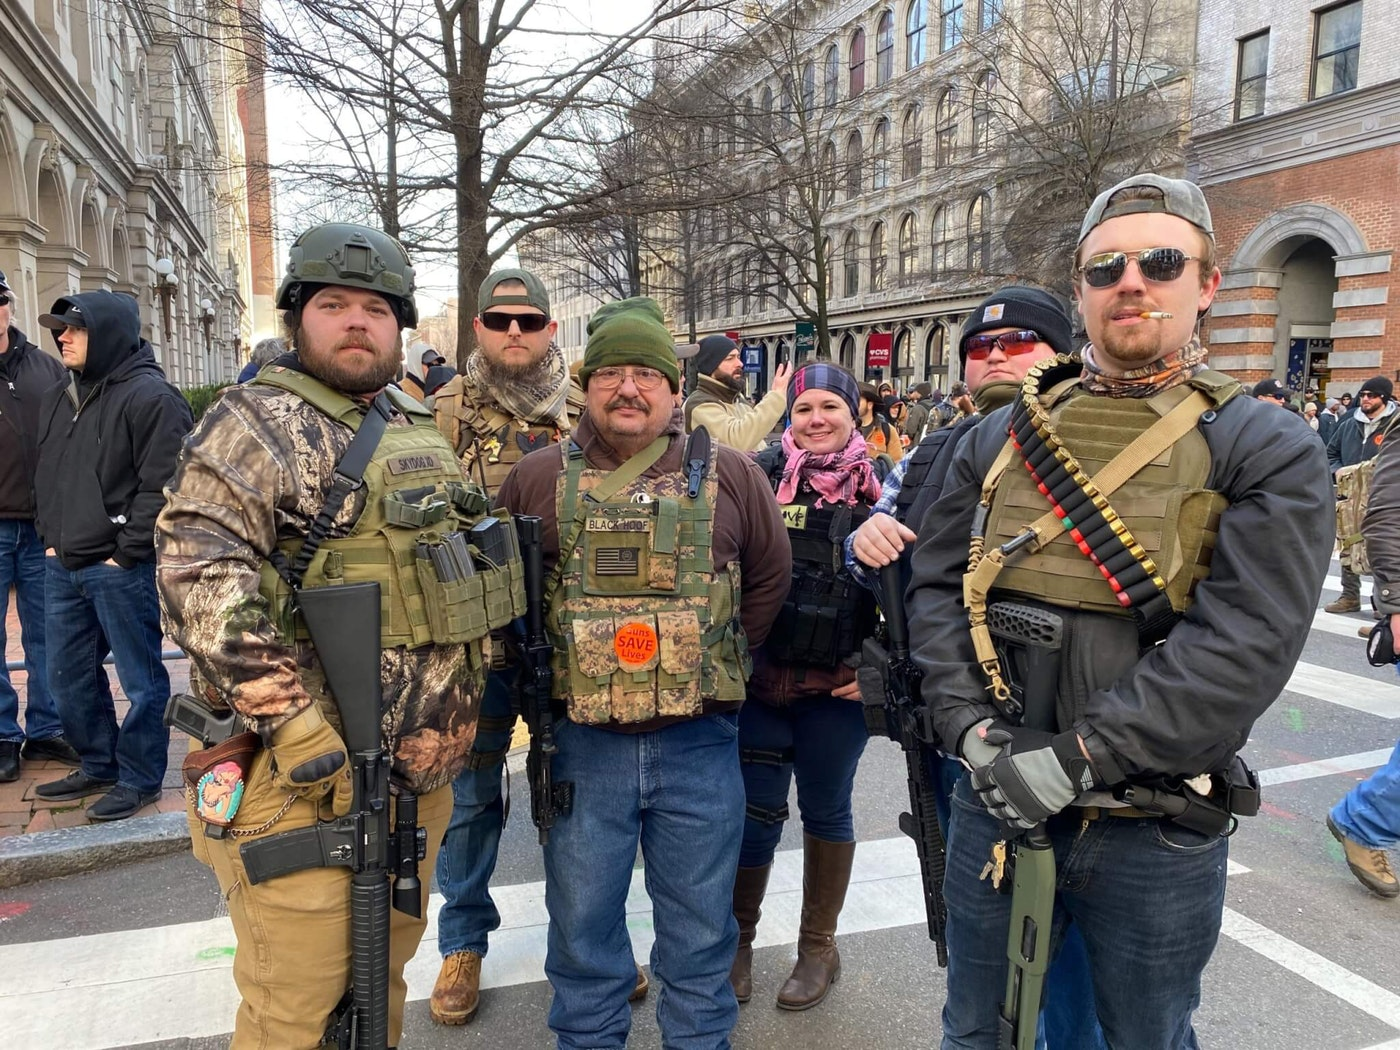 Protesters against gun safety legislation in Richmond on Monday, January 20. (Davis Burroughs / The Dogwood)